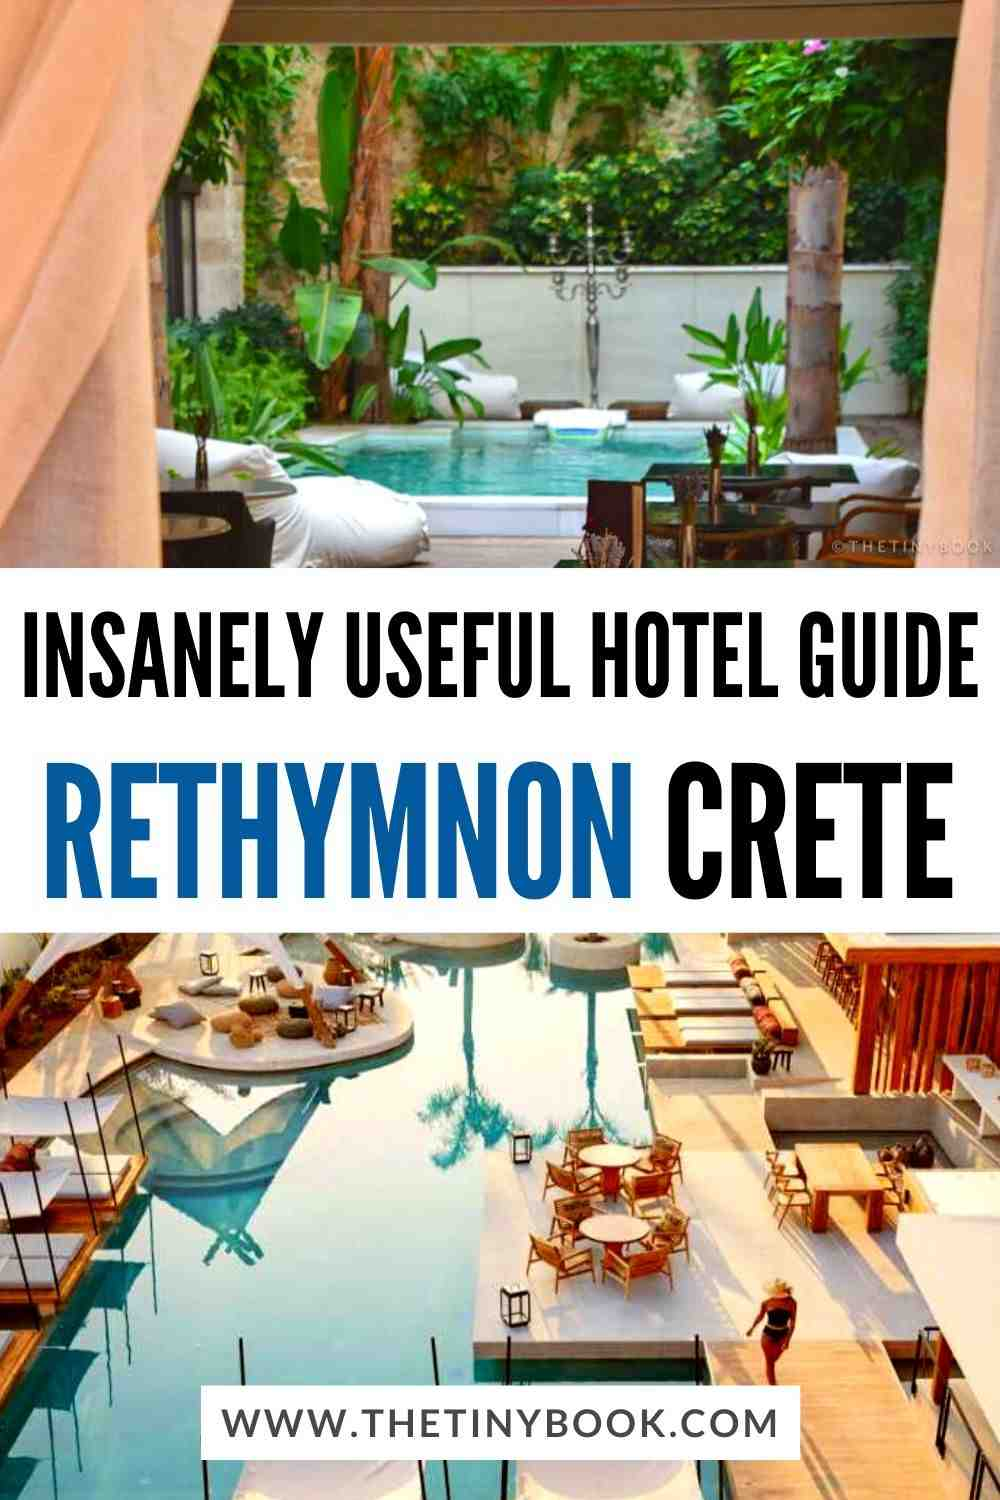 Accommodation Guide for Rethymnon Crete